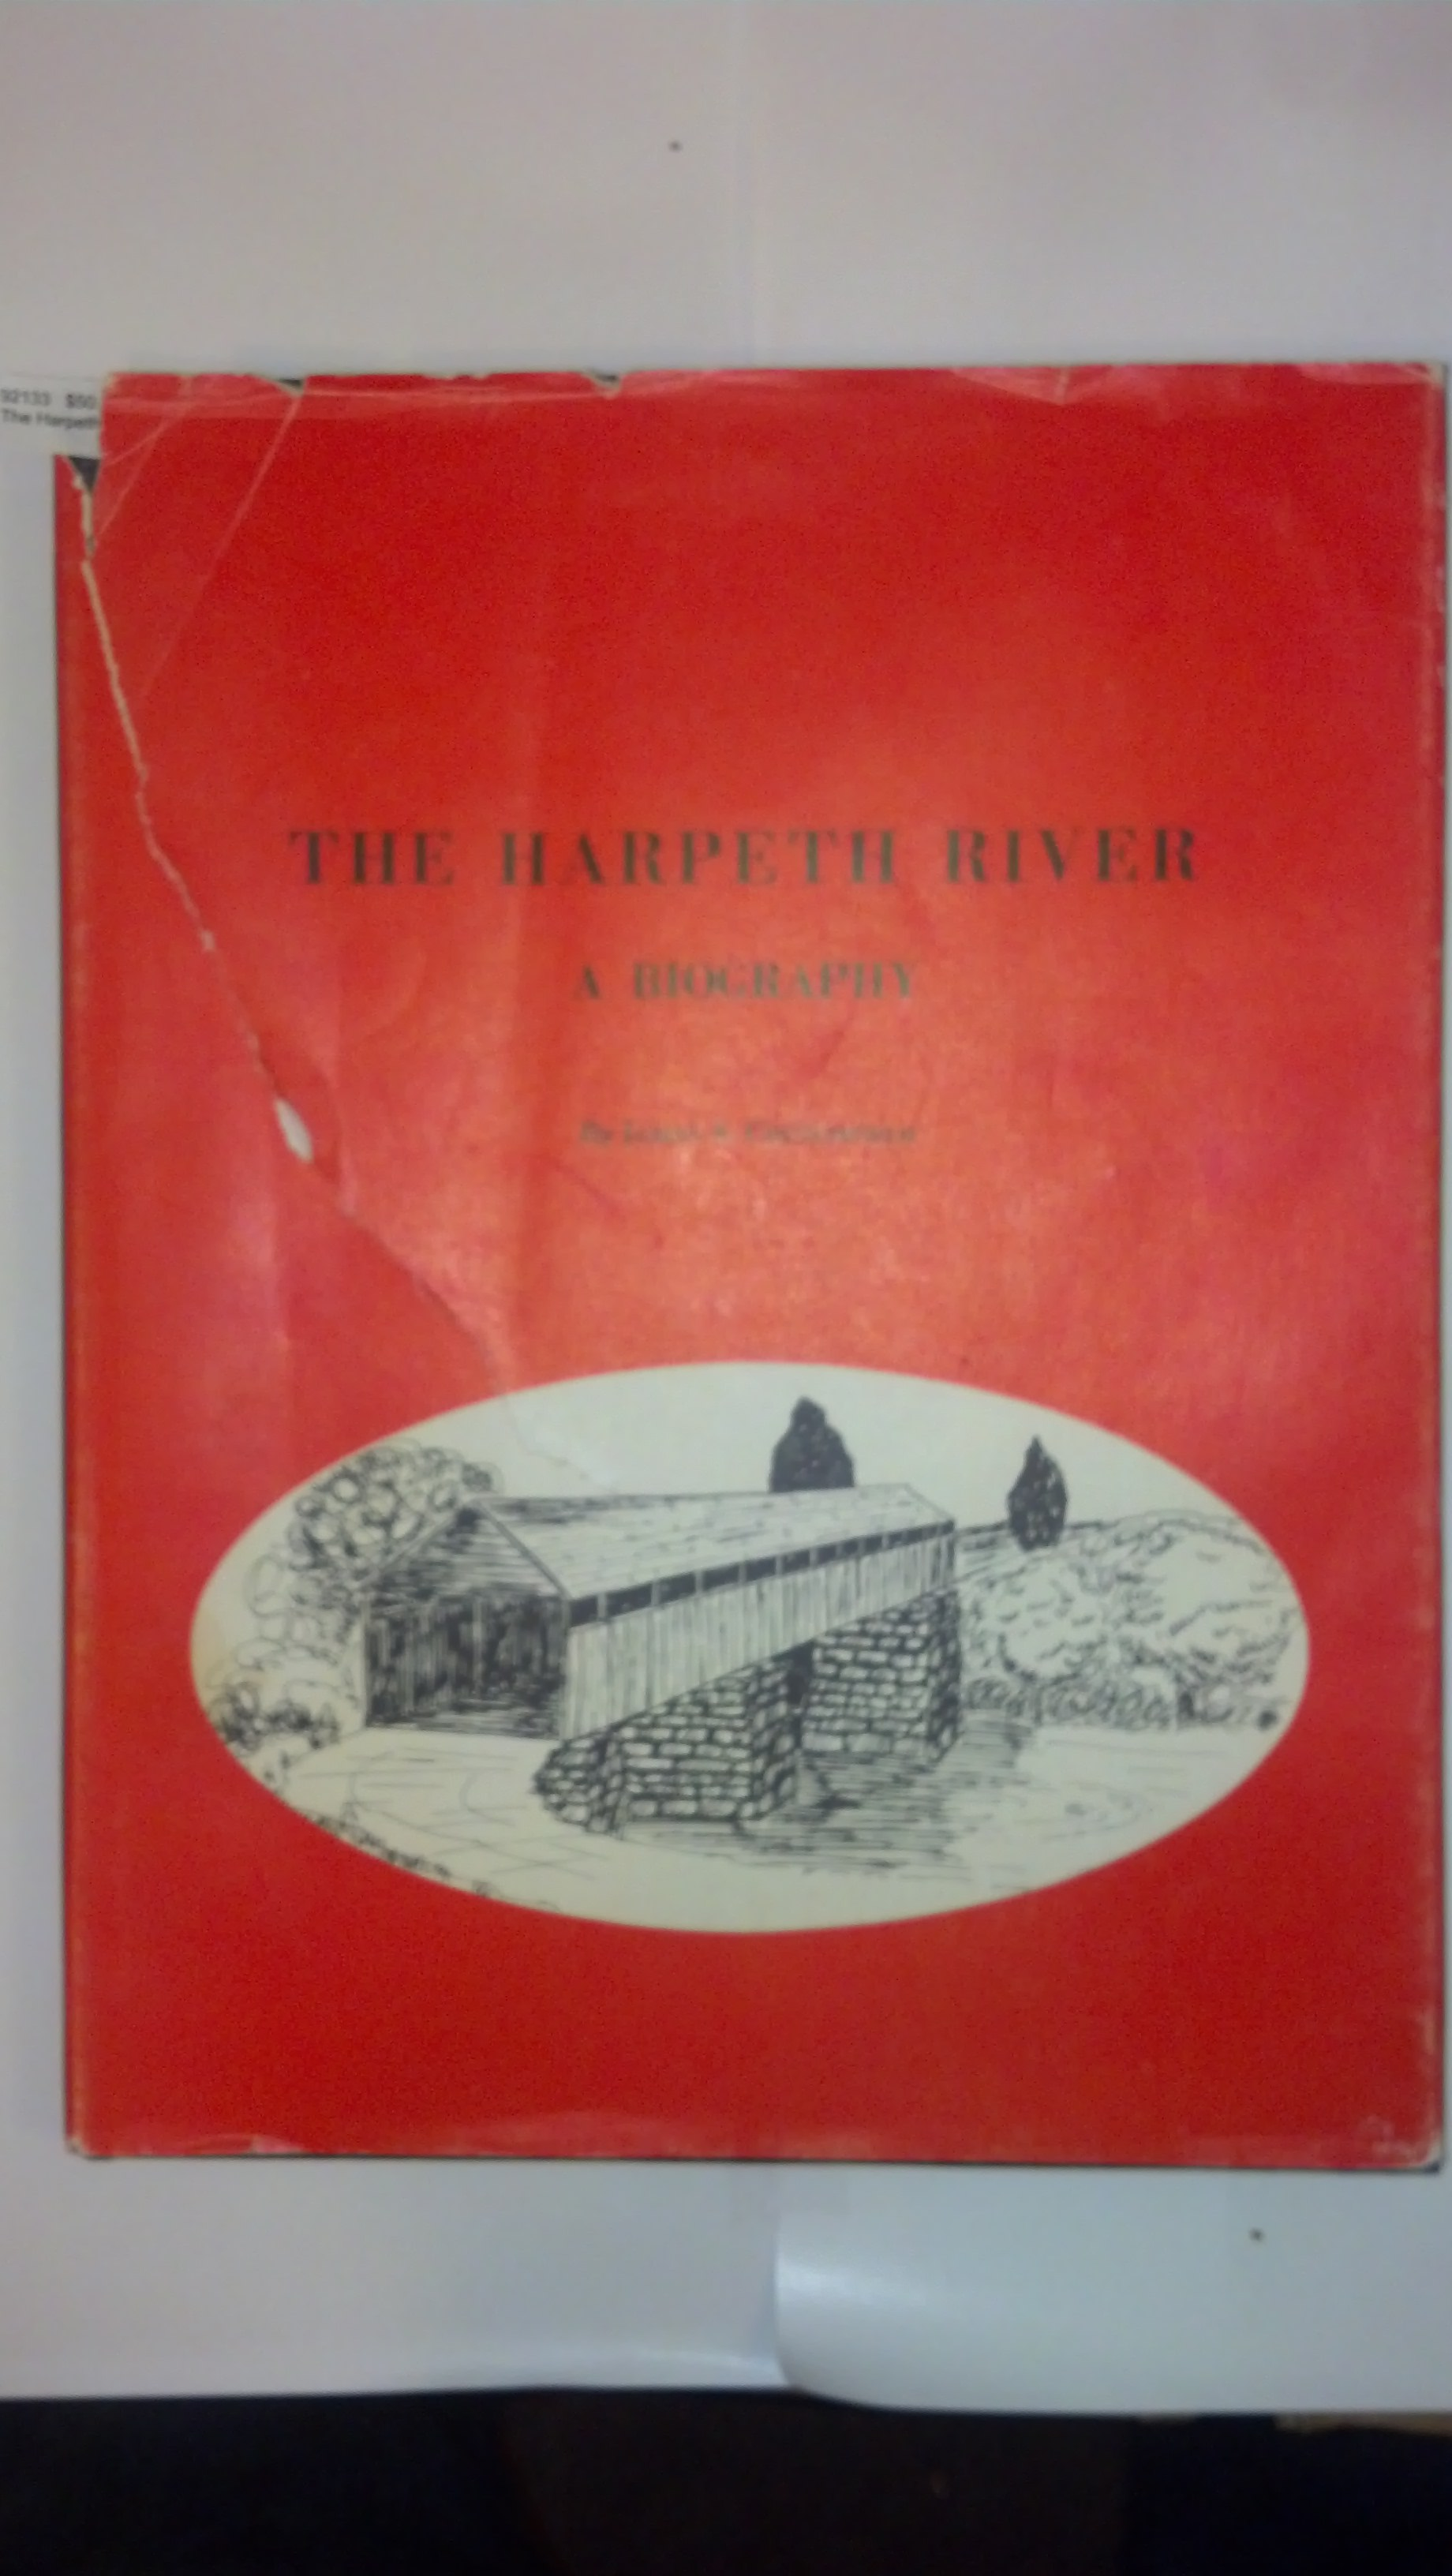 The Harpeth River, A Biography Crutchfield, James A. Hardcover VERY-GOOD HARDBACK IN MOSTLY GOOD DUSTJACKET BUT WITH A LONG BUT NEATLY MENDED TEAR (IN FRONT, AS PICTURED) AND SOME EDGE CHIPS TO DUSTJACKET AS WELL